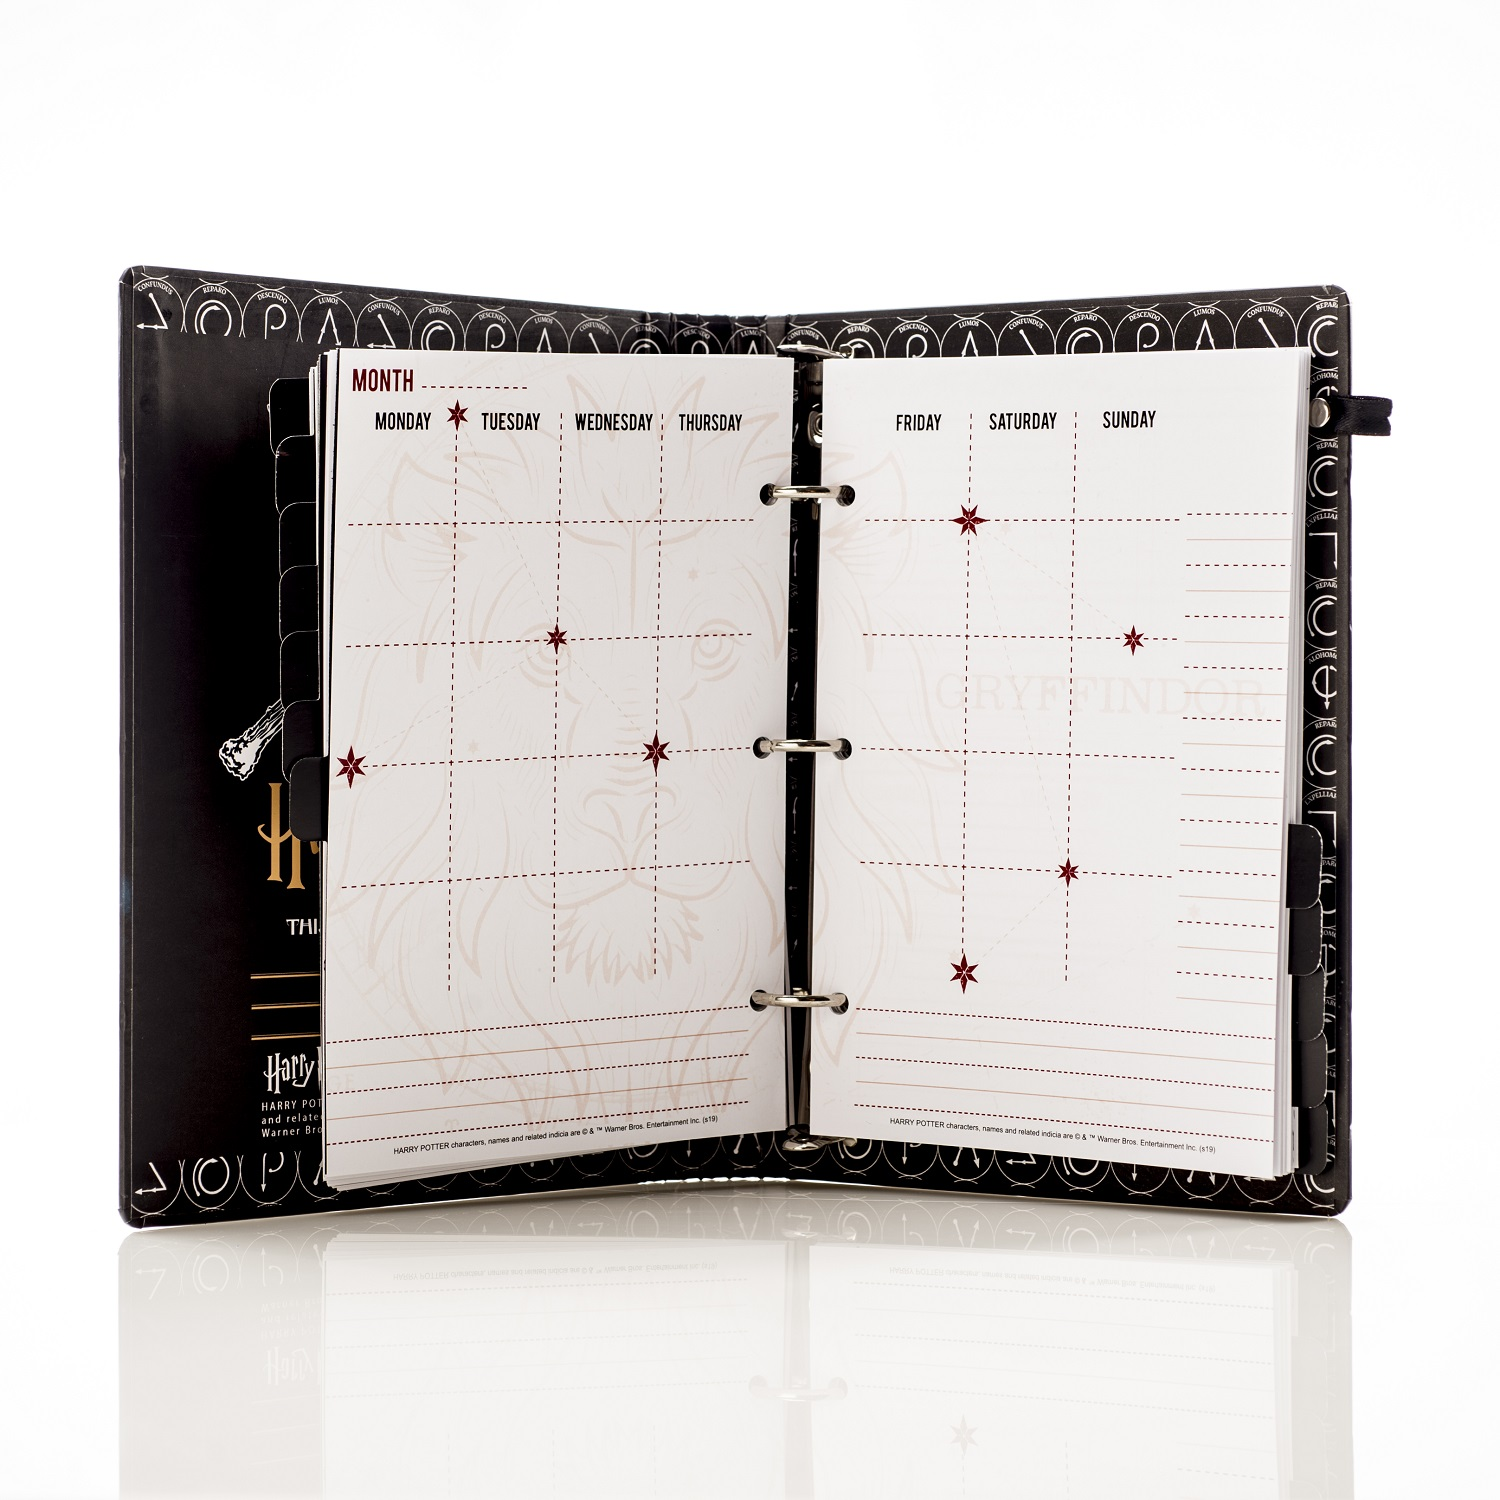 ConQuest Journals Celestial Planner monthly pages